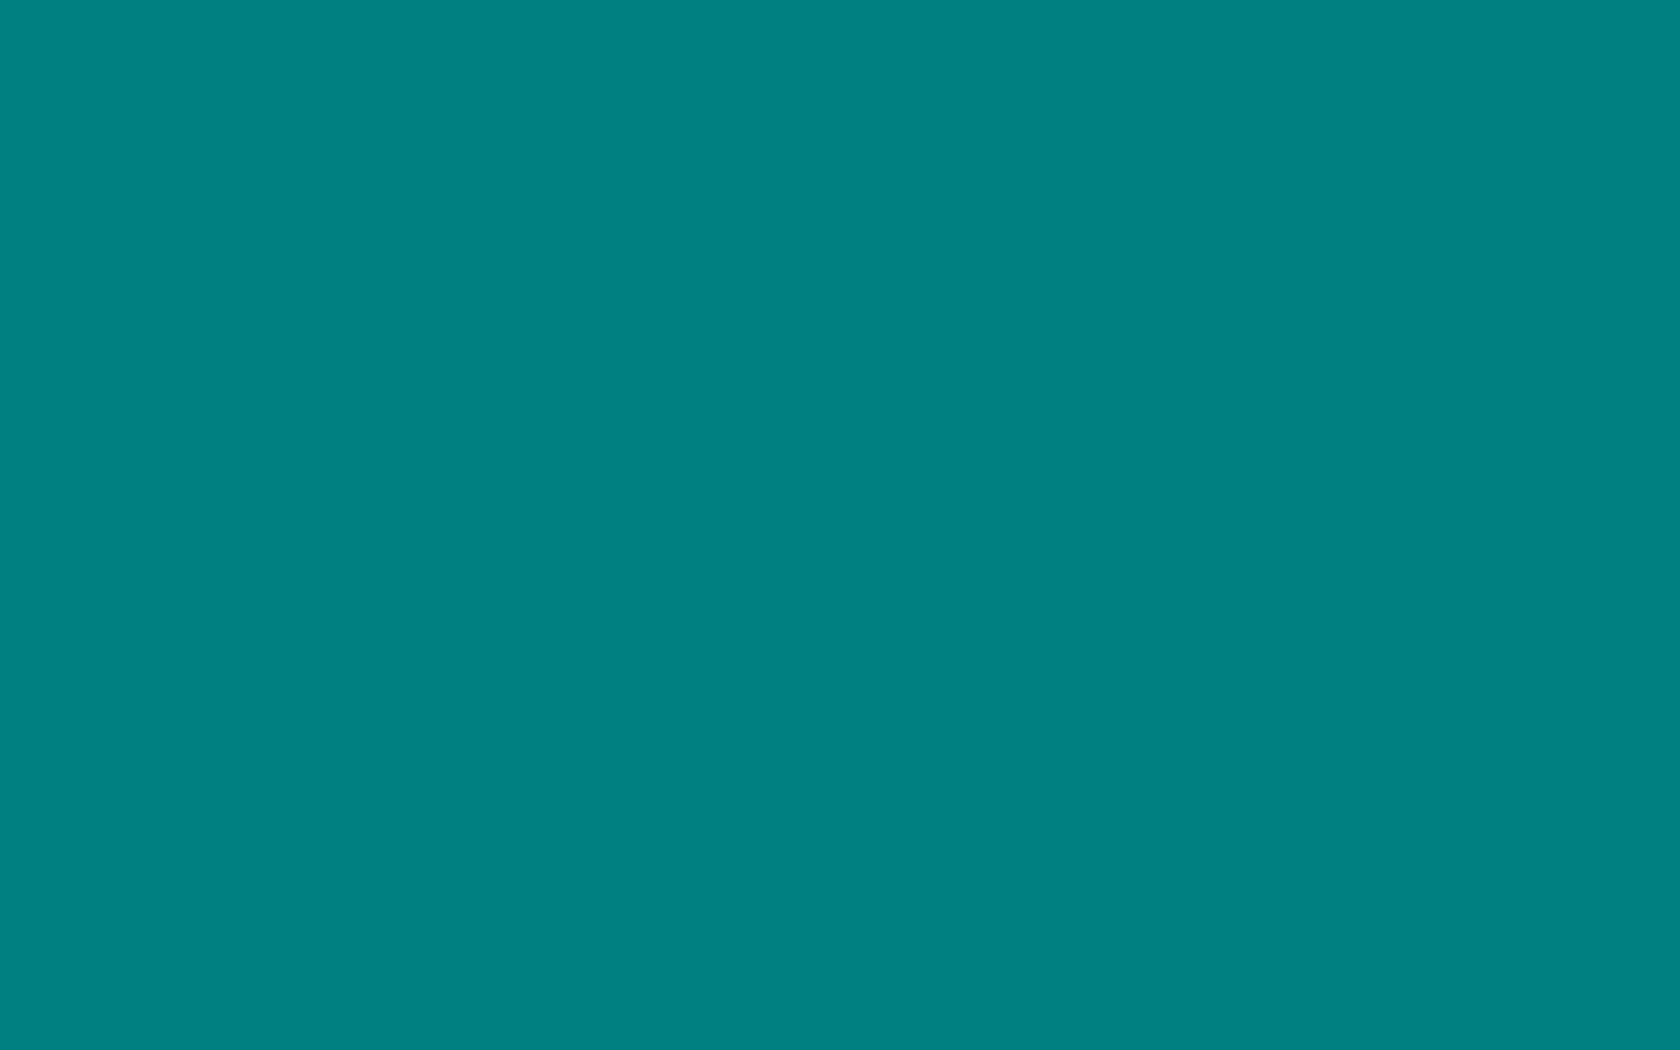 Teal Color Teal Is A Deep Blue Green Color A Dark Cyan Teal Gets Its Name From The Colored Area Ar Blue Paint Colors Solid Color Backgrounds Stiffkey Blue